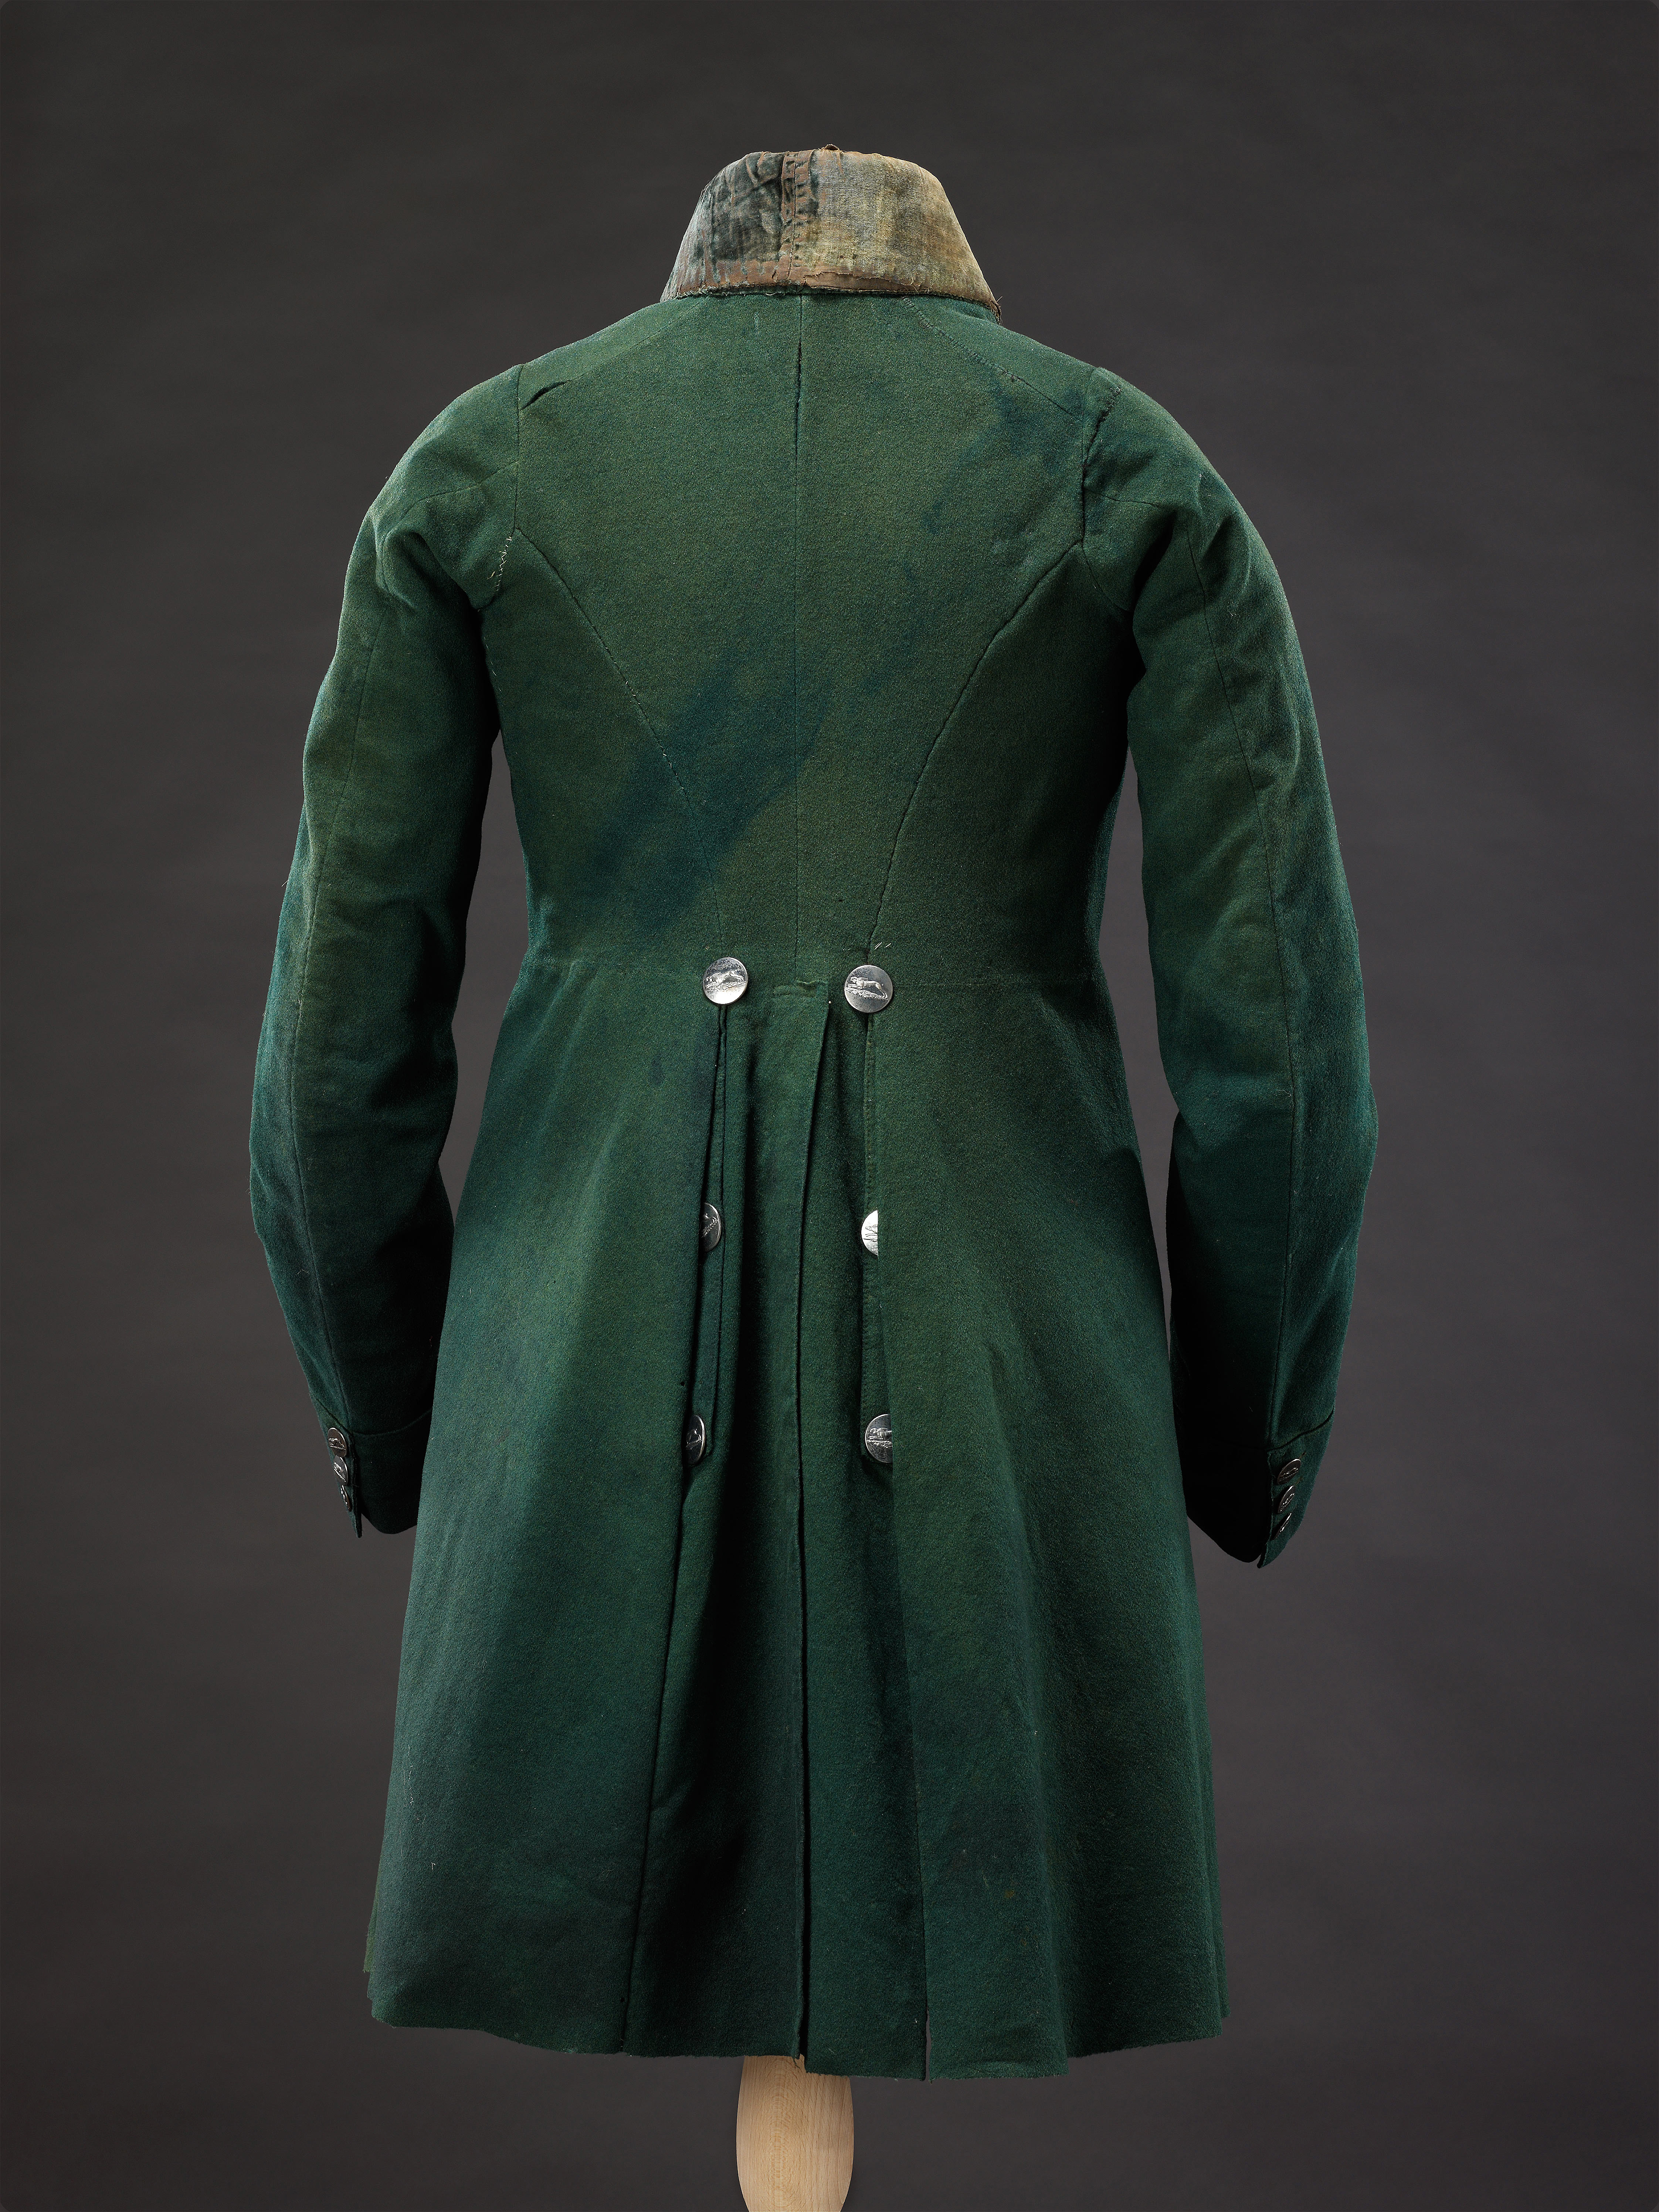 Shooting Coat The John Bright Collection